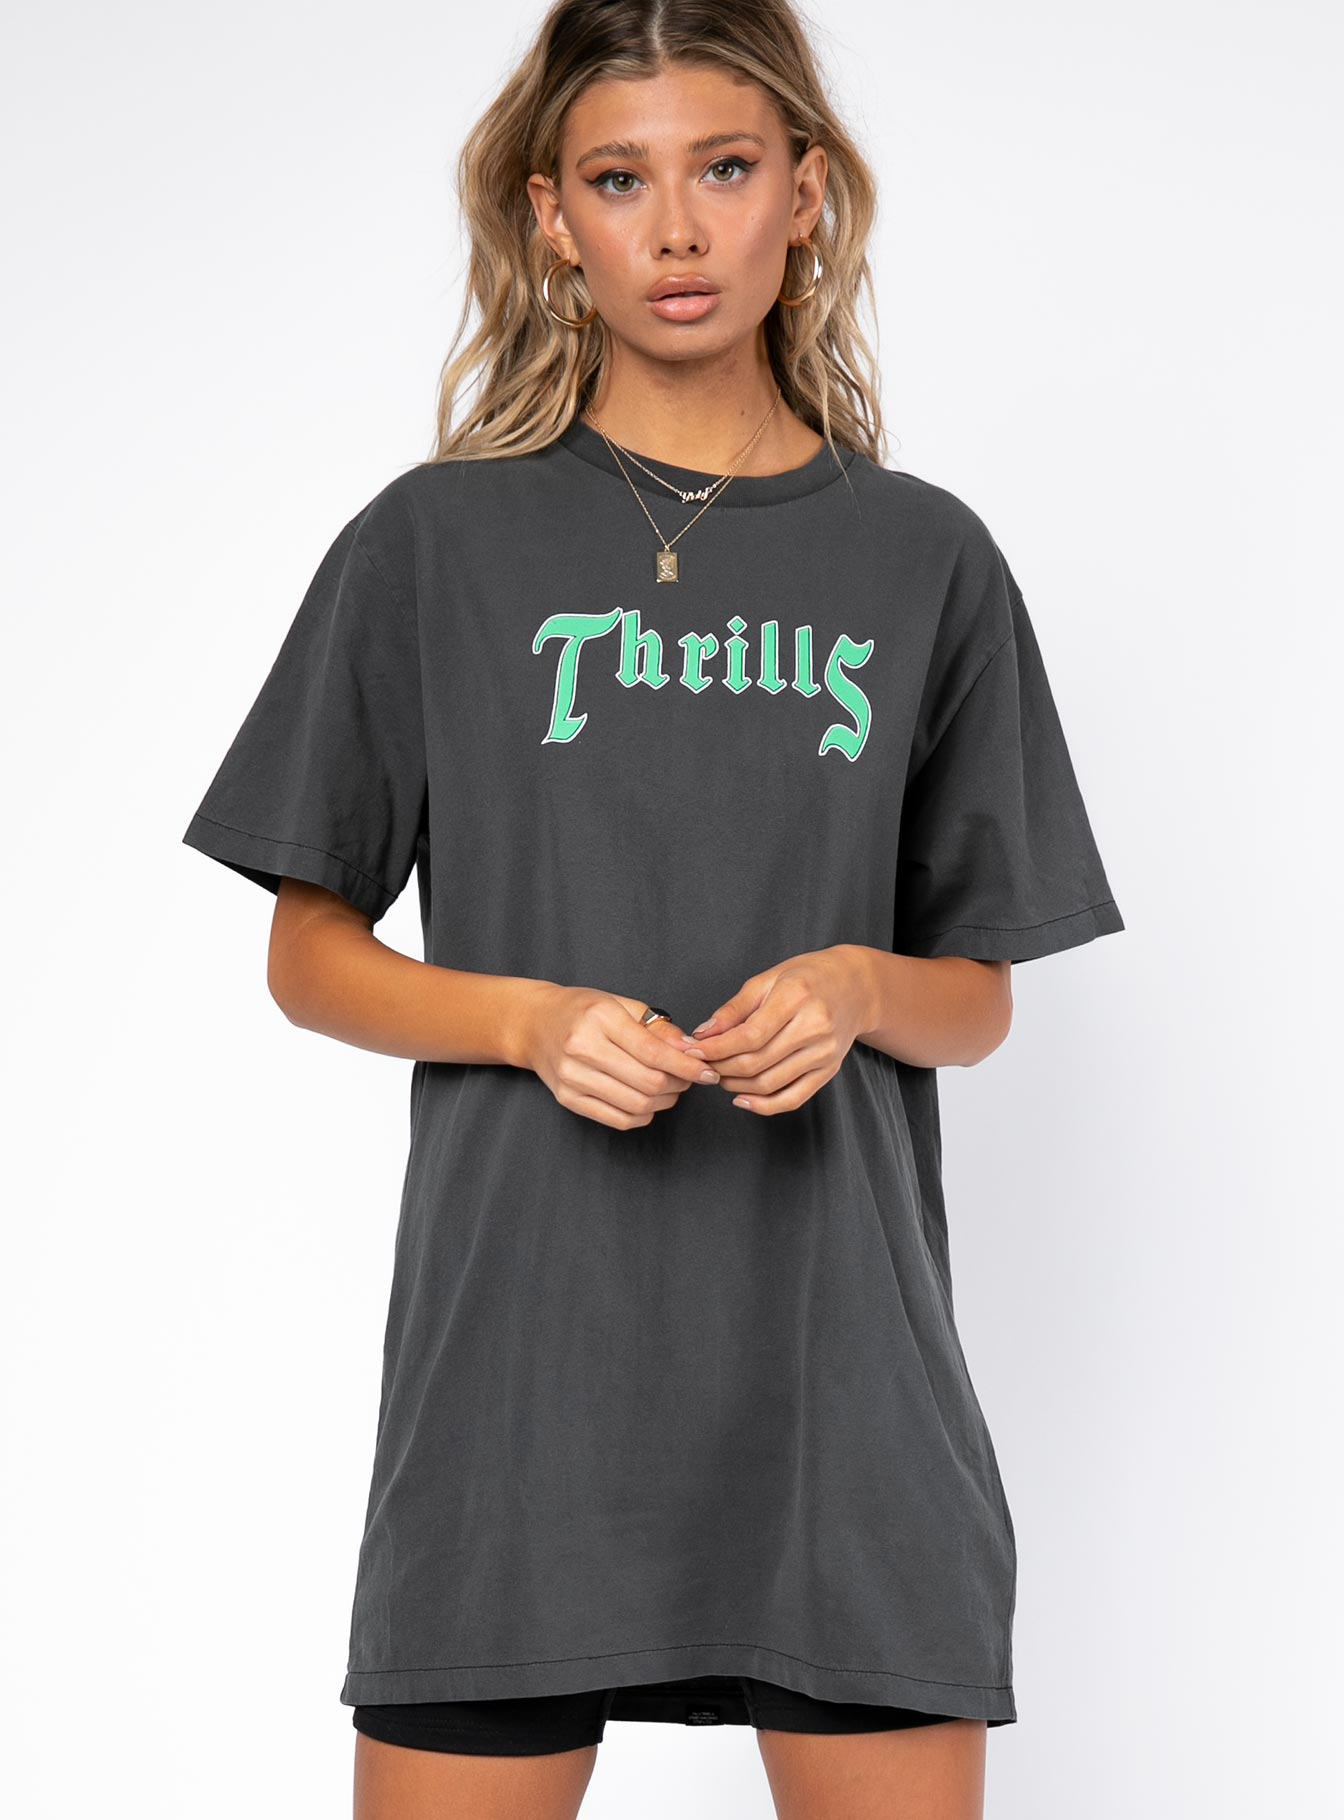 Thrills Stamp Merch Tee